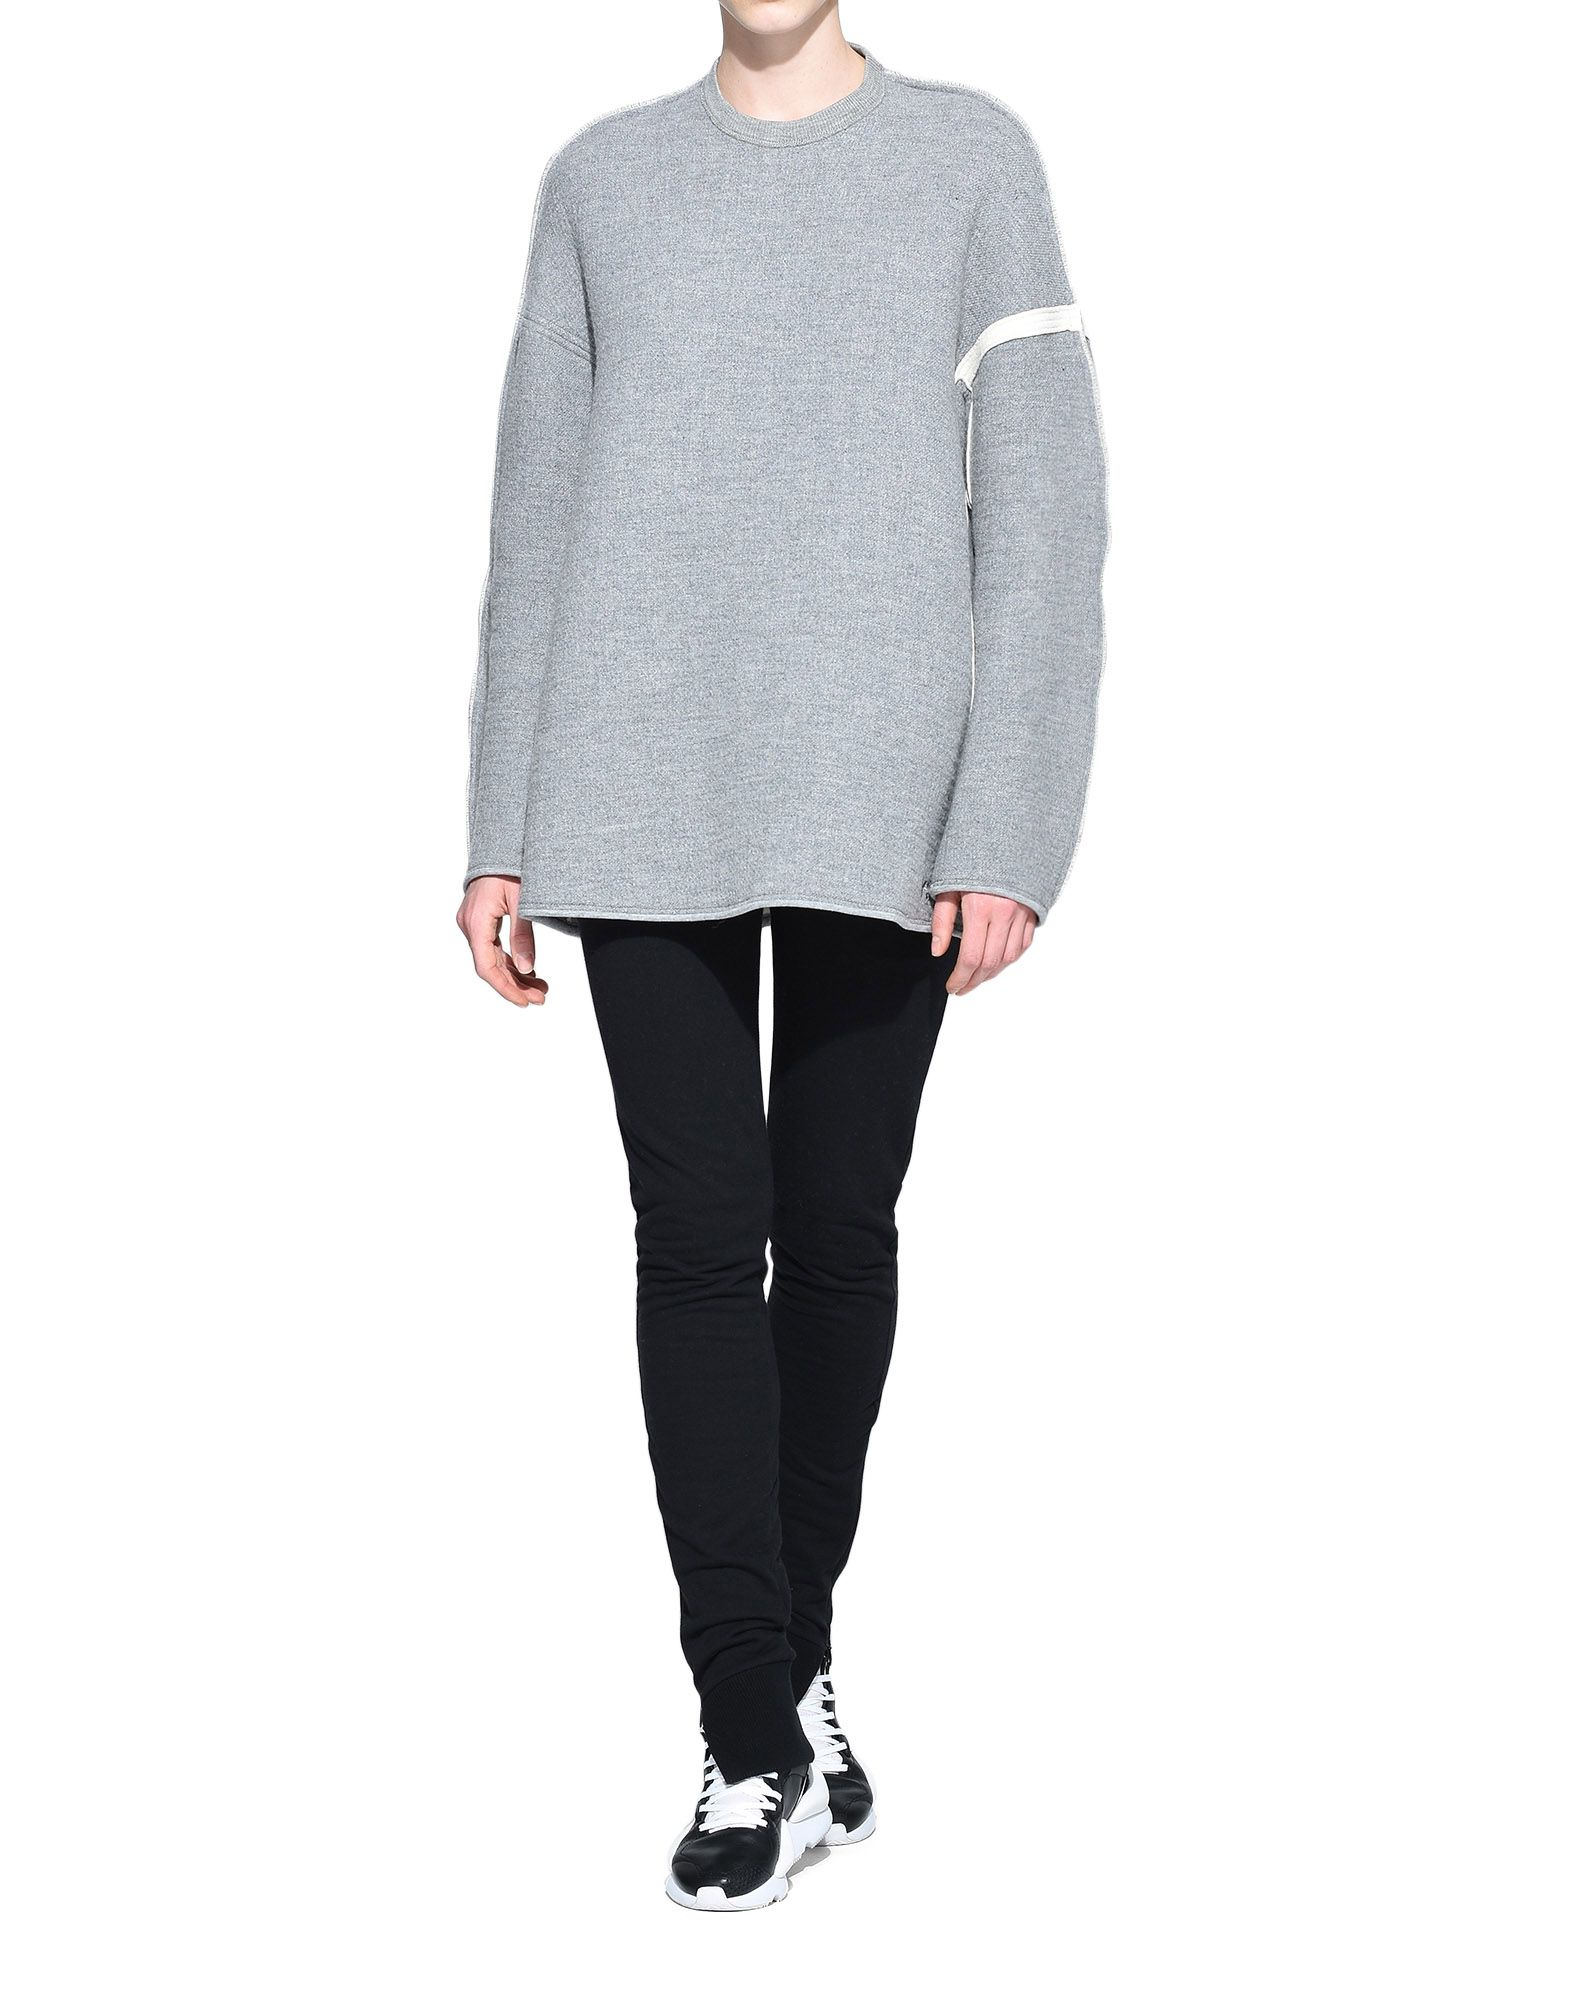 Y-3 Y-3 Oversize Spacer Wool Sweater スウェット レディース a